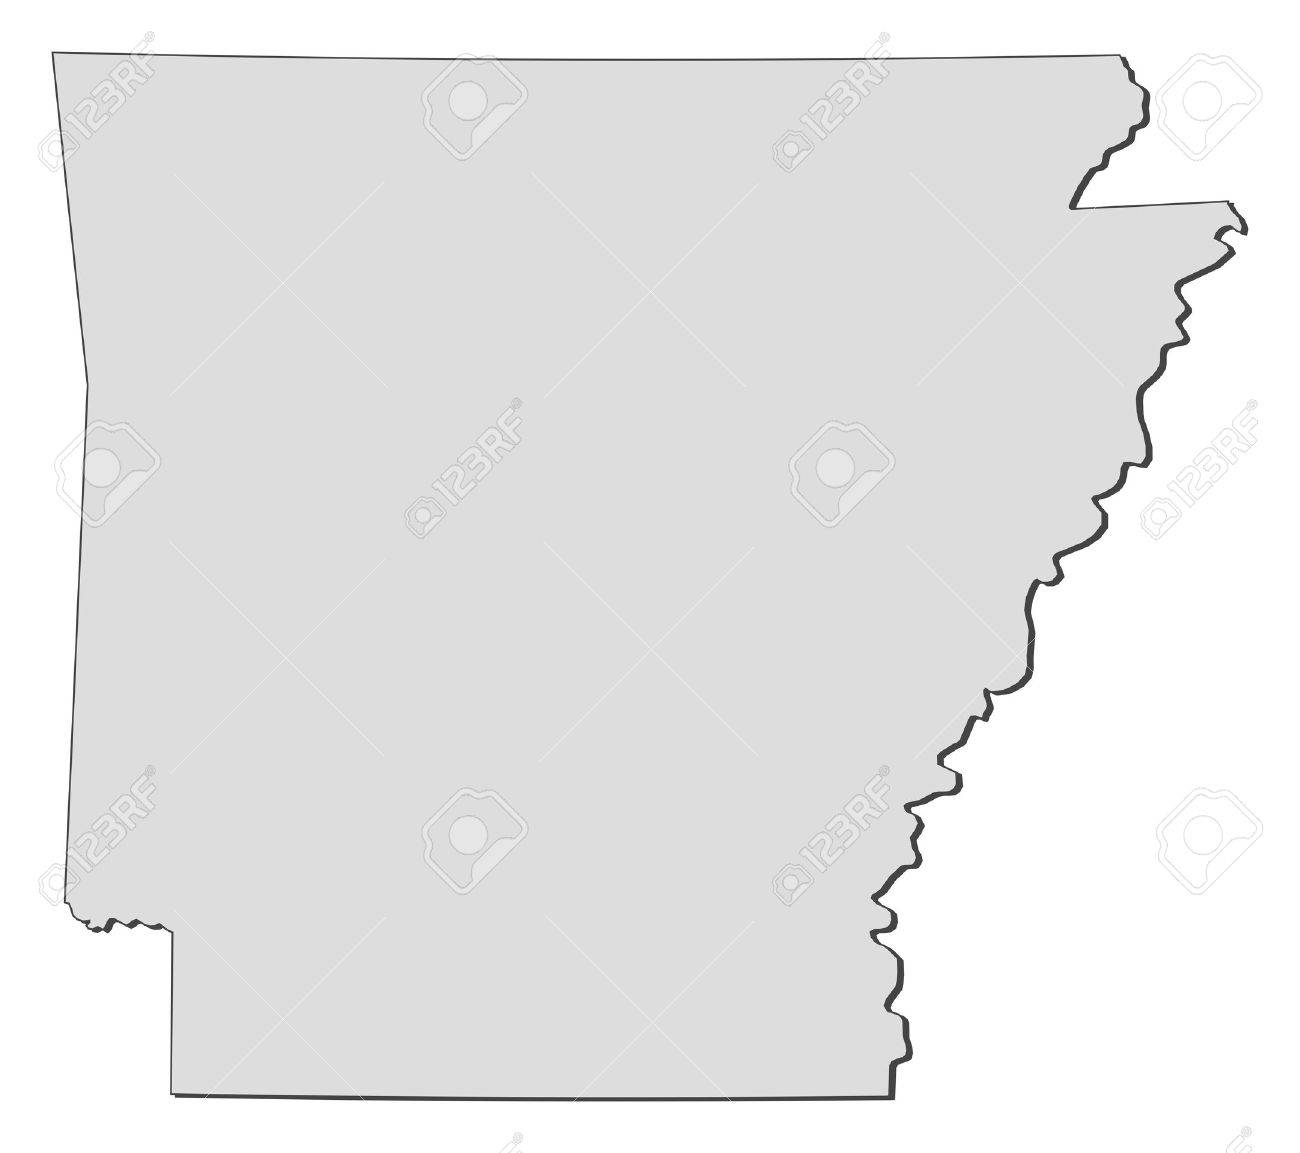 Map Of Arkansas A State Of United States Royalty Free Cliparts - Arkansas us map